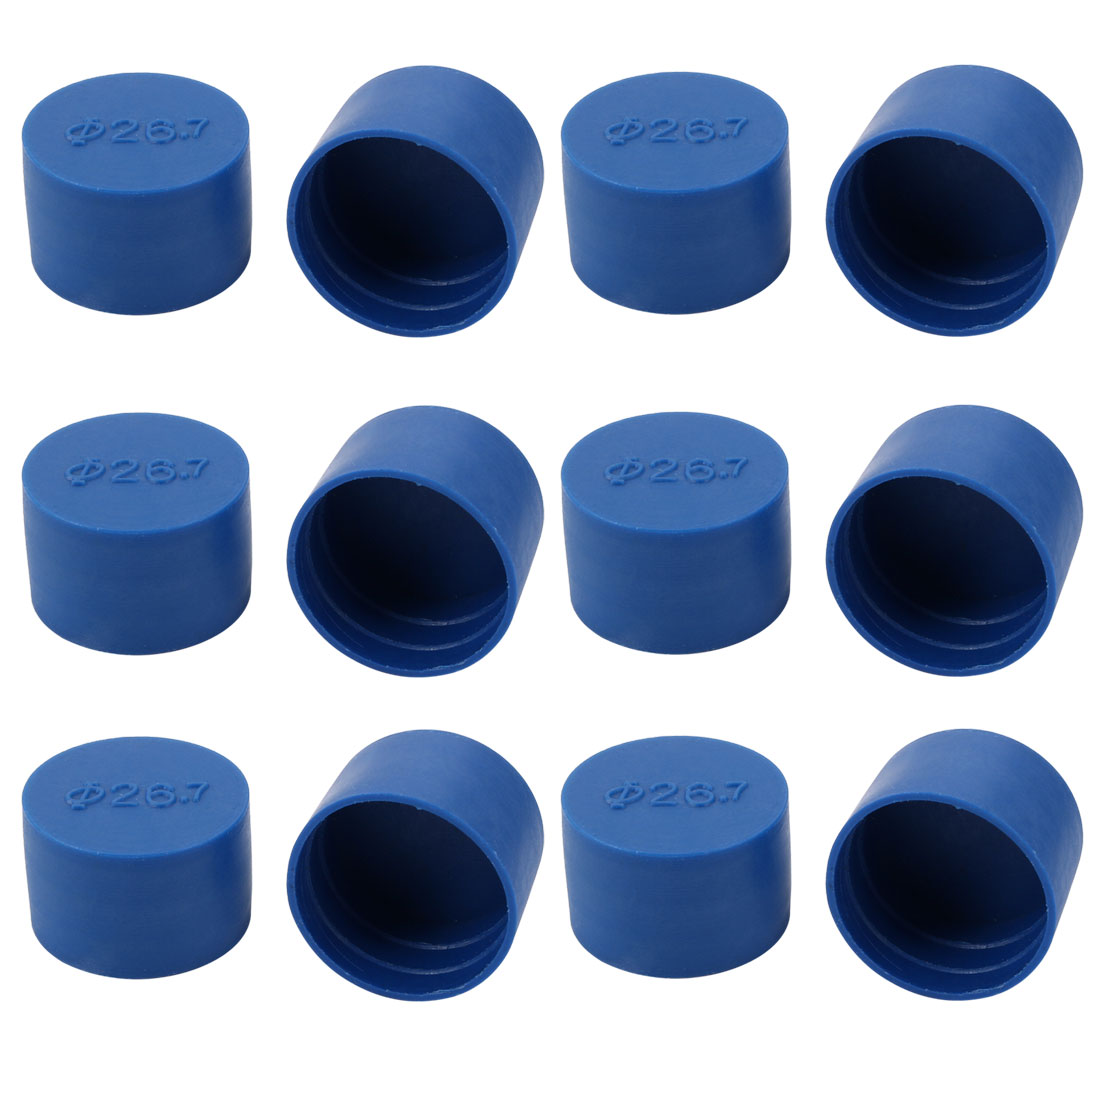 12pcs 26.7mm Inner Dia PE Plastic End Cap Bolt Thread Protector Tube Cover Blue